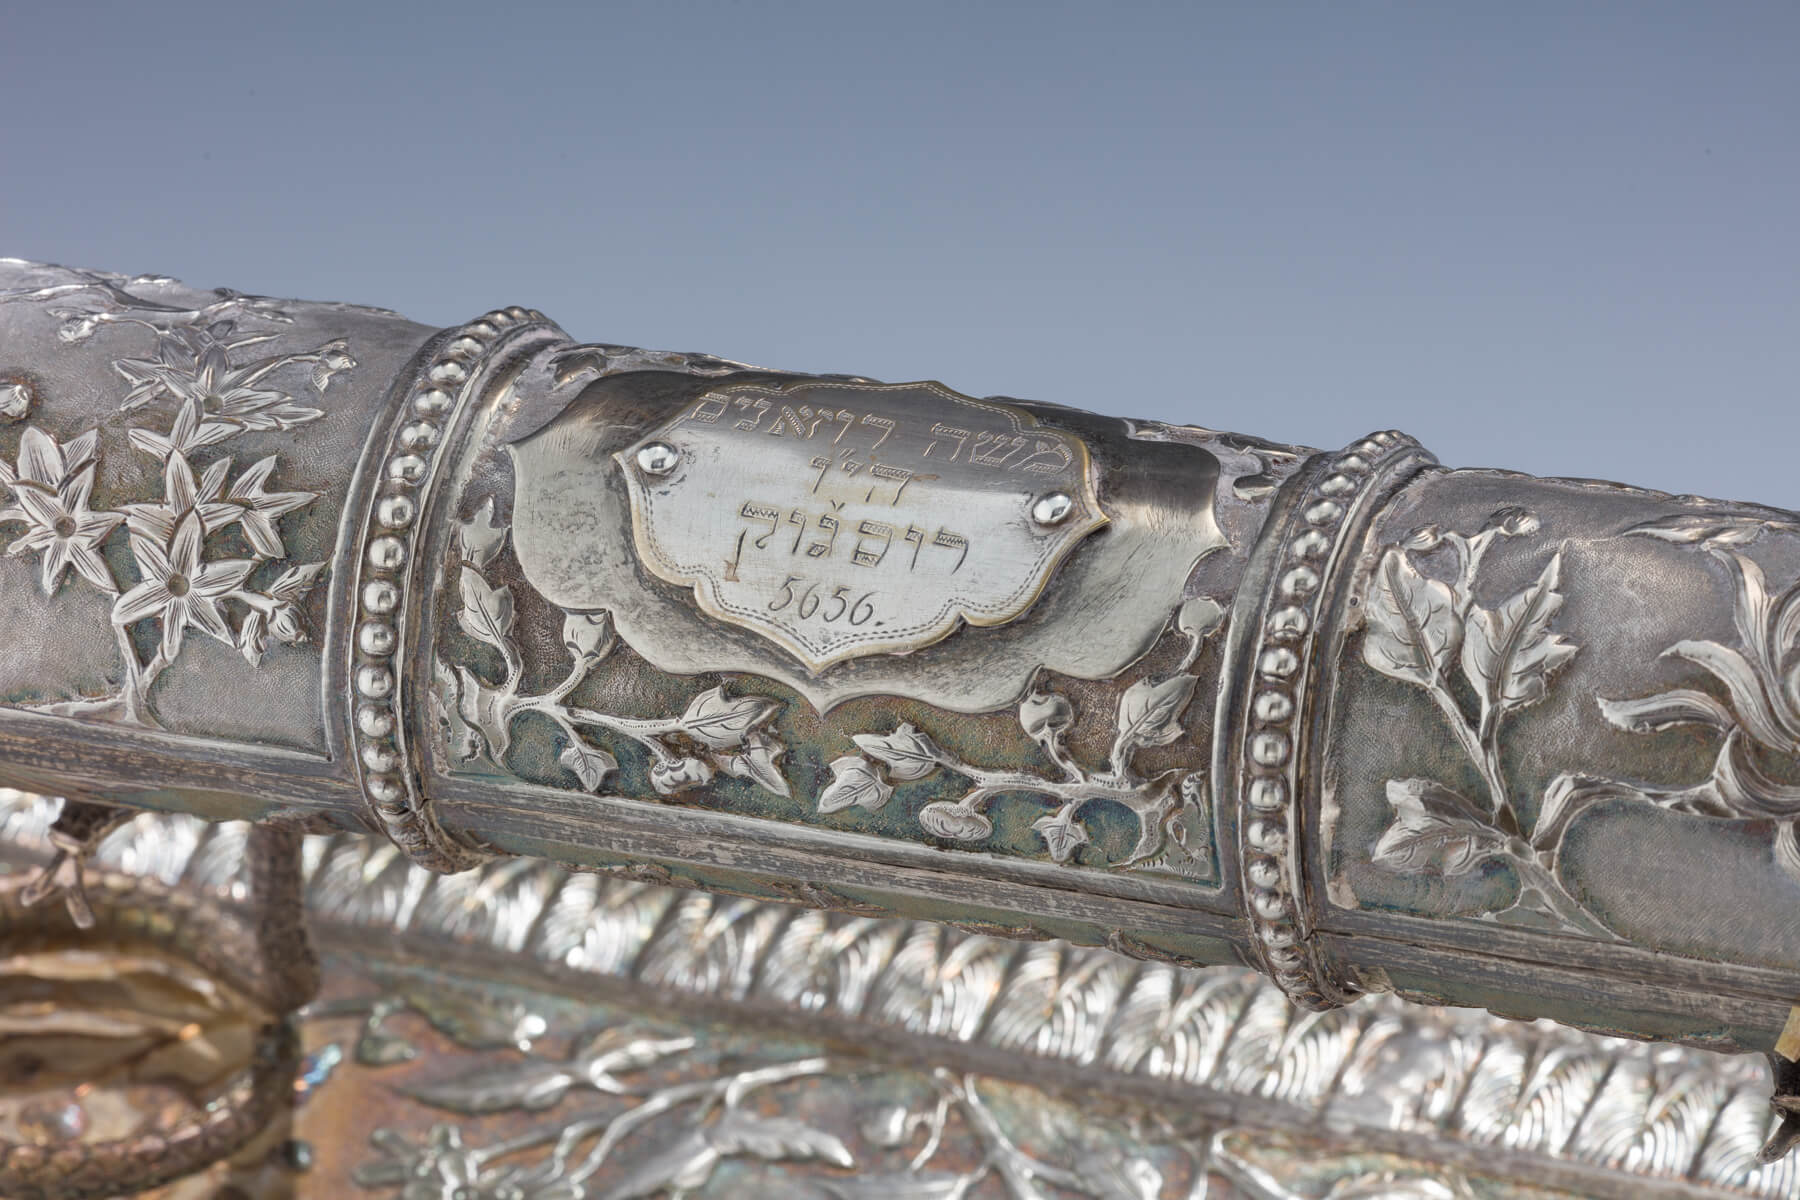 121. A Large Silver Megillah Holder With Megillah